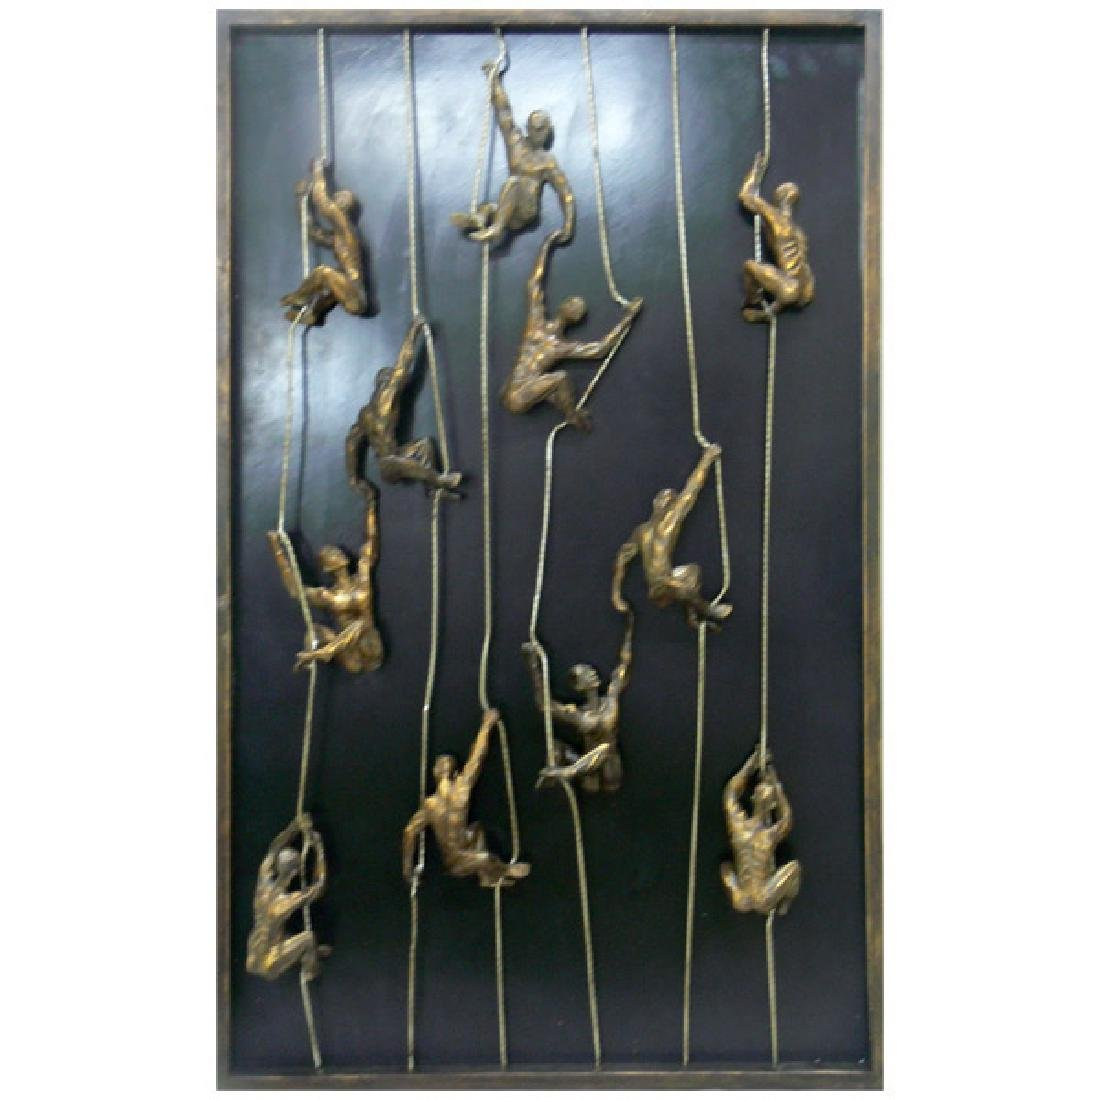 Climbing Wall Decor